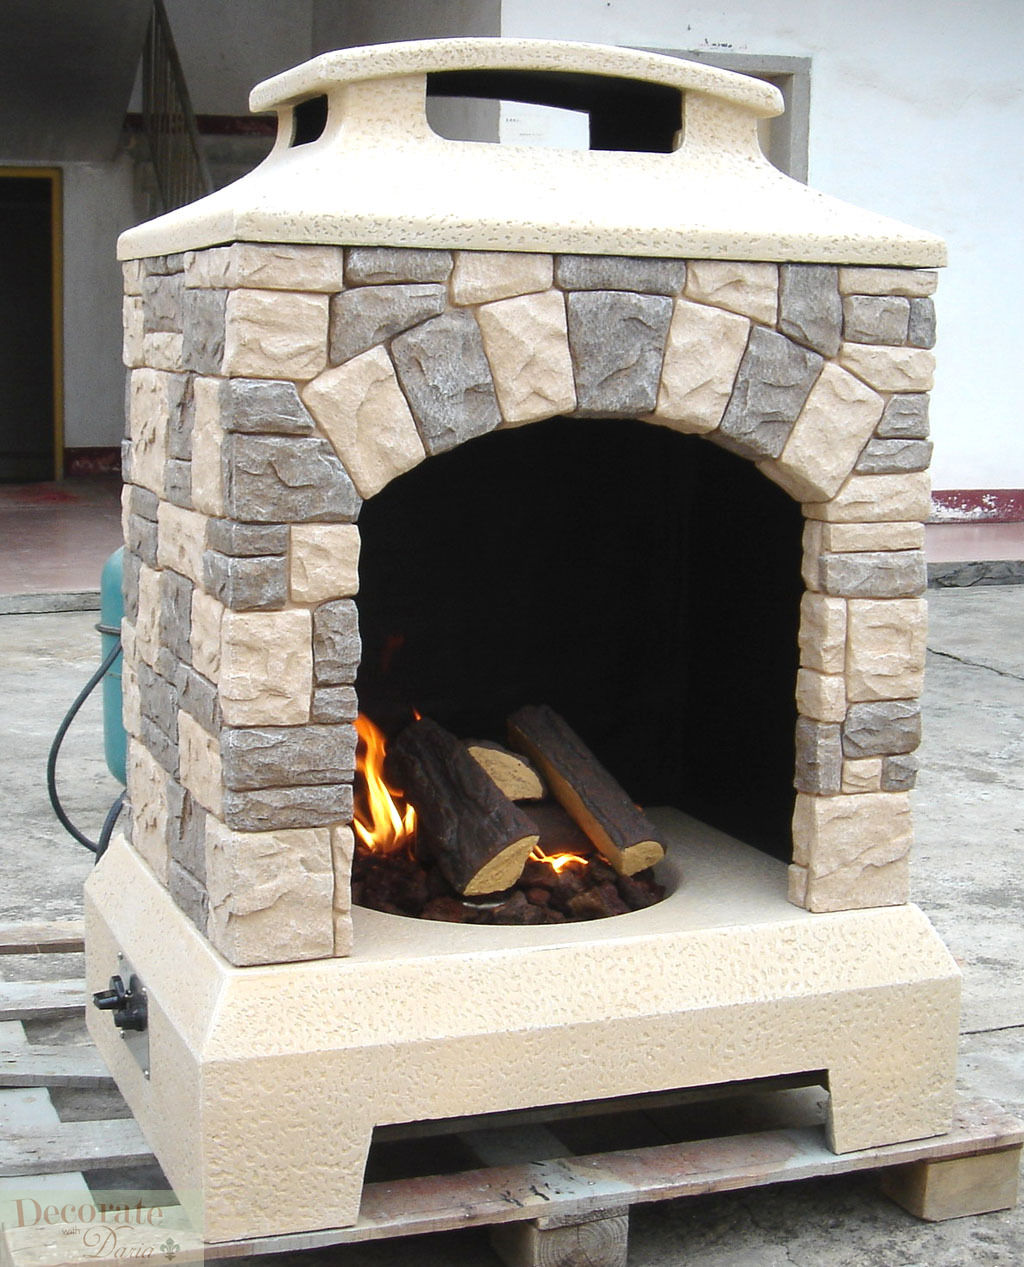 GAS FIREPLACE FIRE PIT OUTDOOR TUSCAN STYLE STONE w/Logs ... on Outdoor Gas Fireplace For Deck id=53427